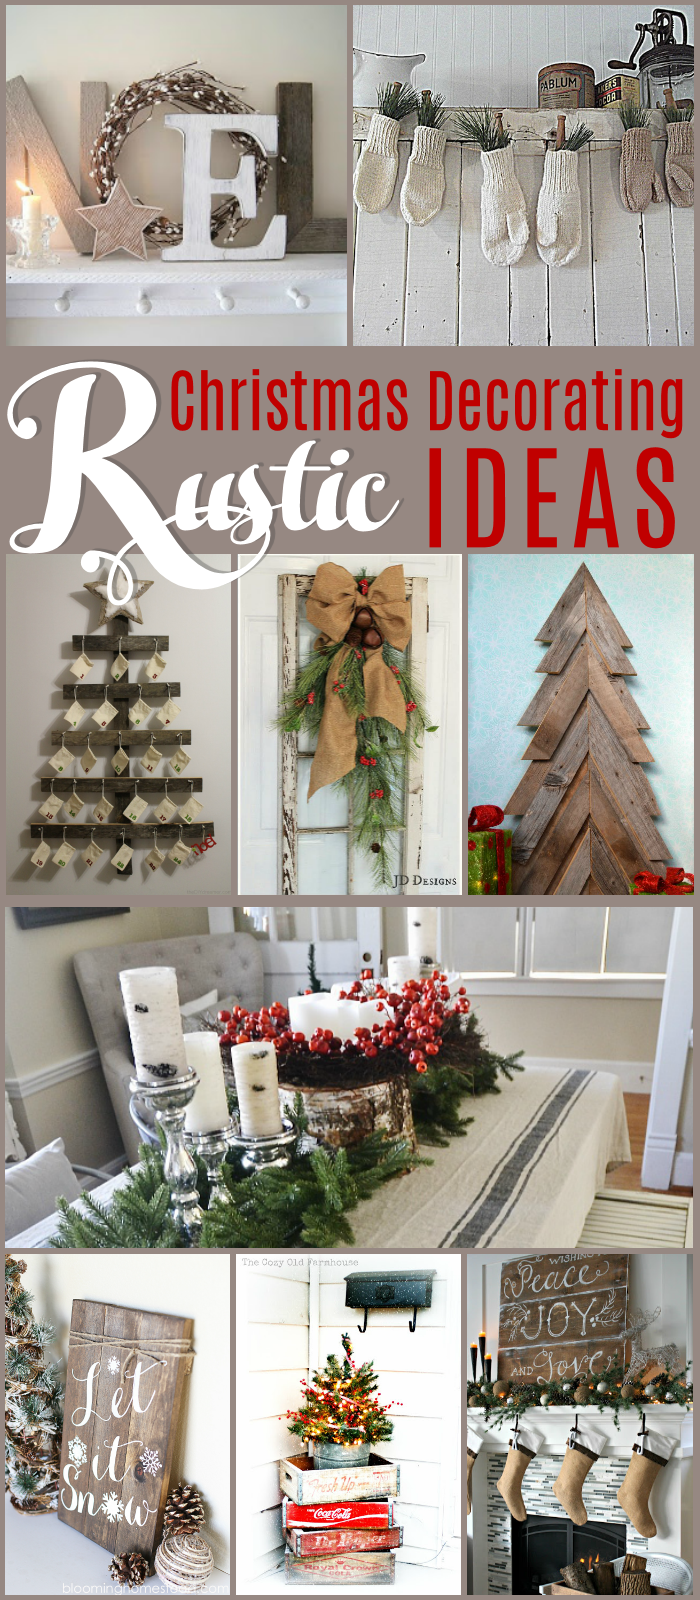 Rustic Christmas Decorating Ideas The Girl Creative Christmas Decorations Rustic Christmas Decorations Christmas Decor Diy